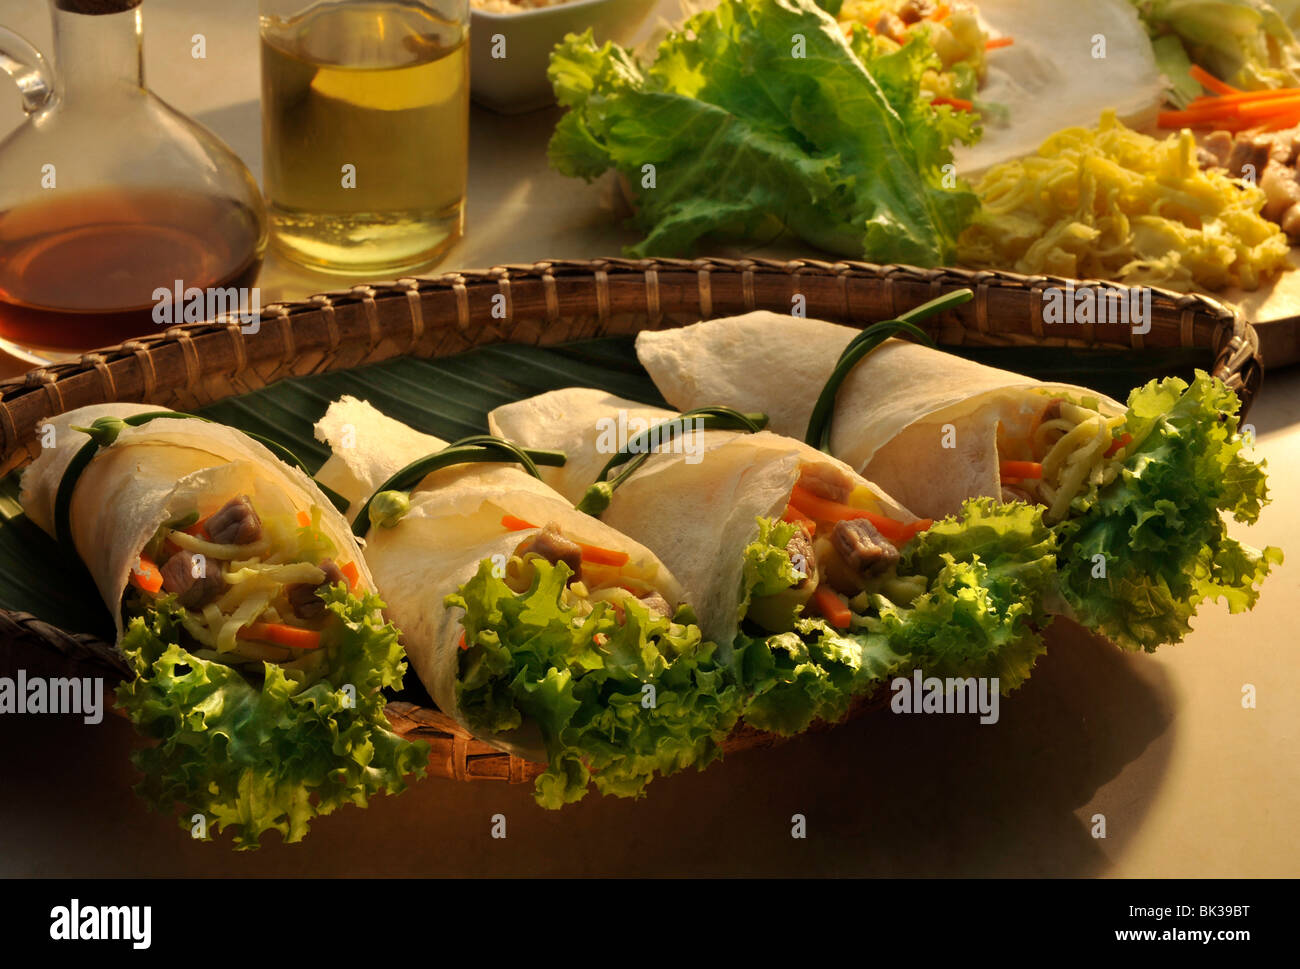 Close-up of spring rolls - Stock Image